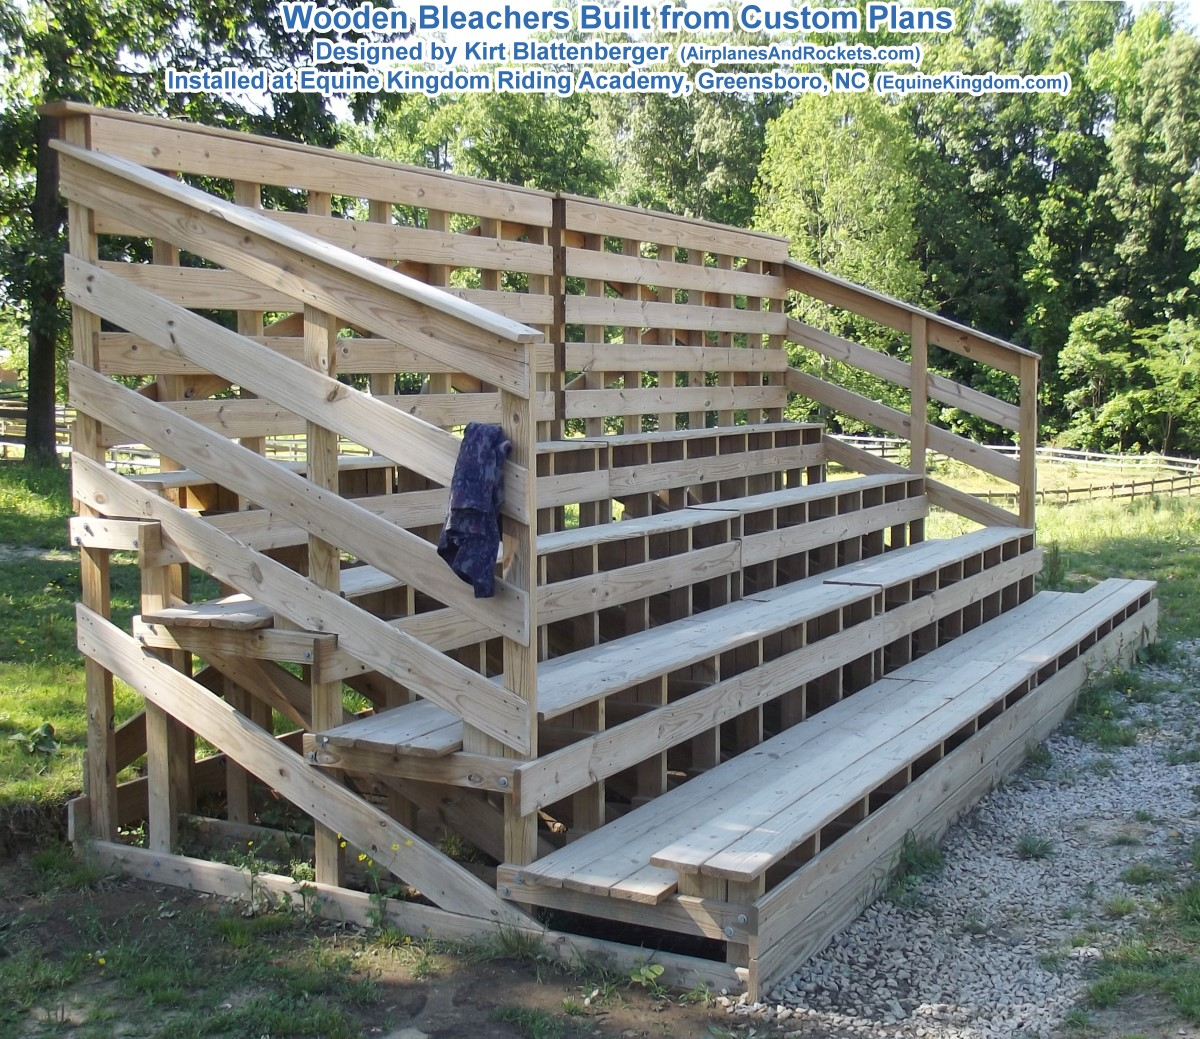 4 Level Wooden Bleachers Plans Airplanes And Rockets